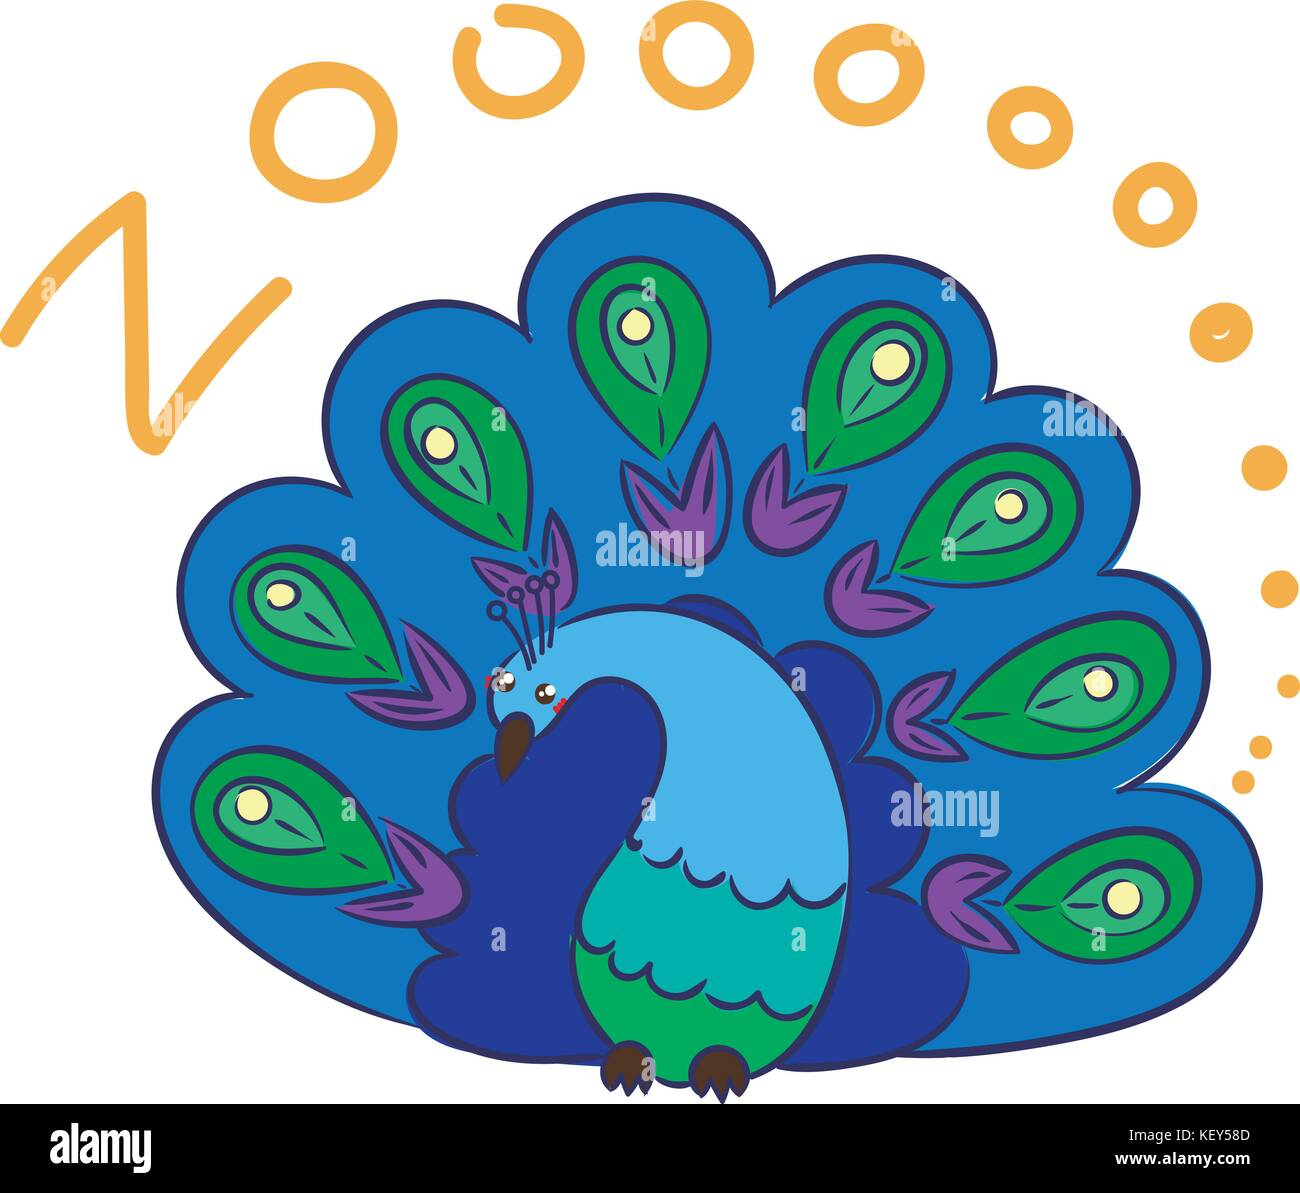 Illustration Of Doodle Cute Peacock Hand Drawn Graphic Vector